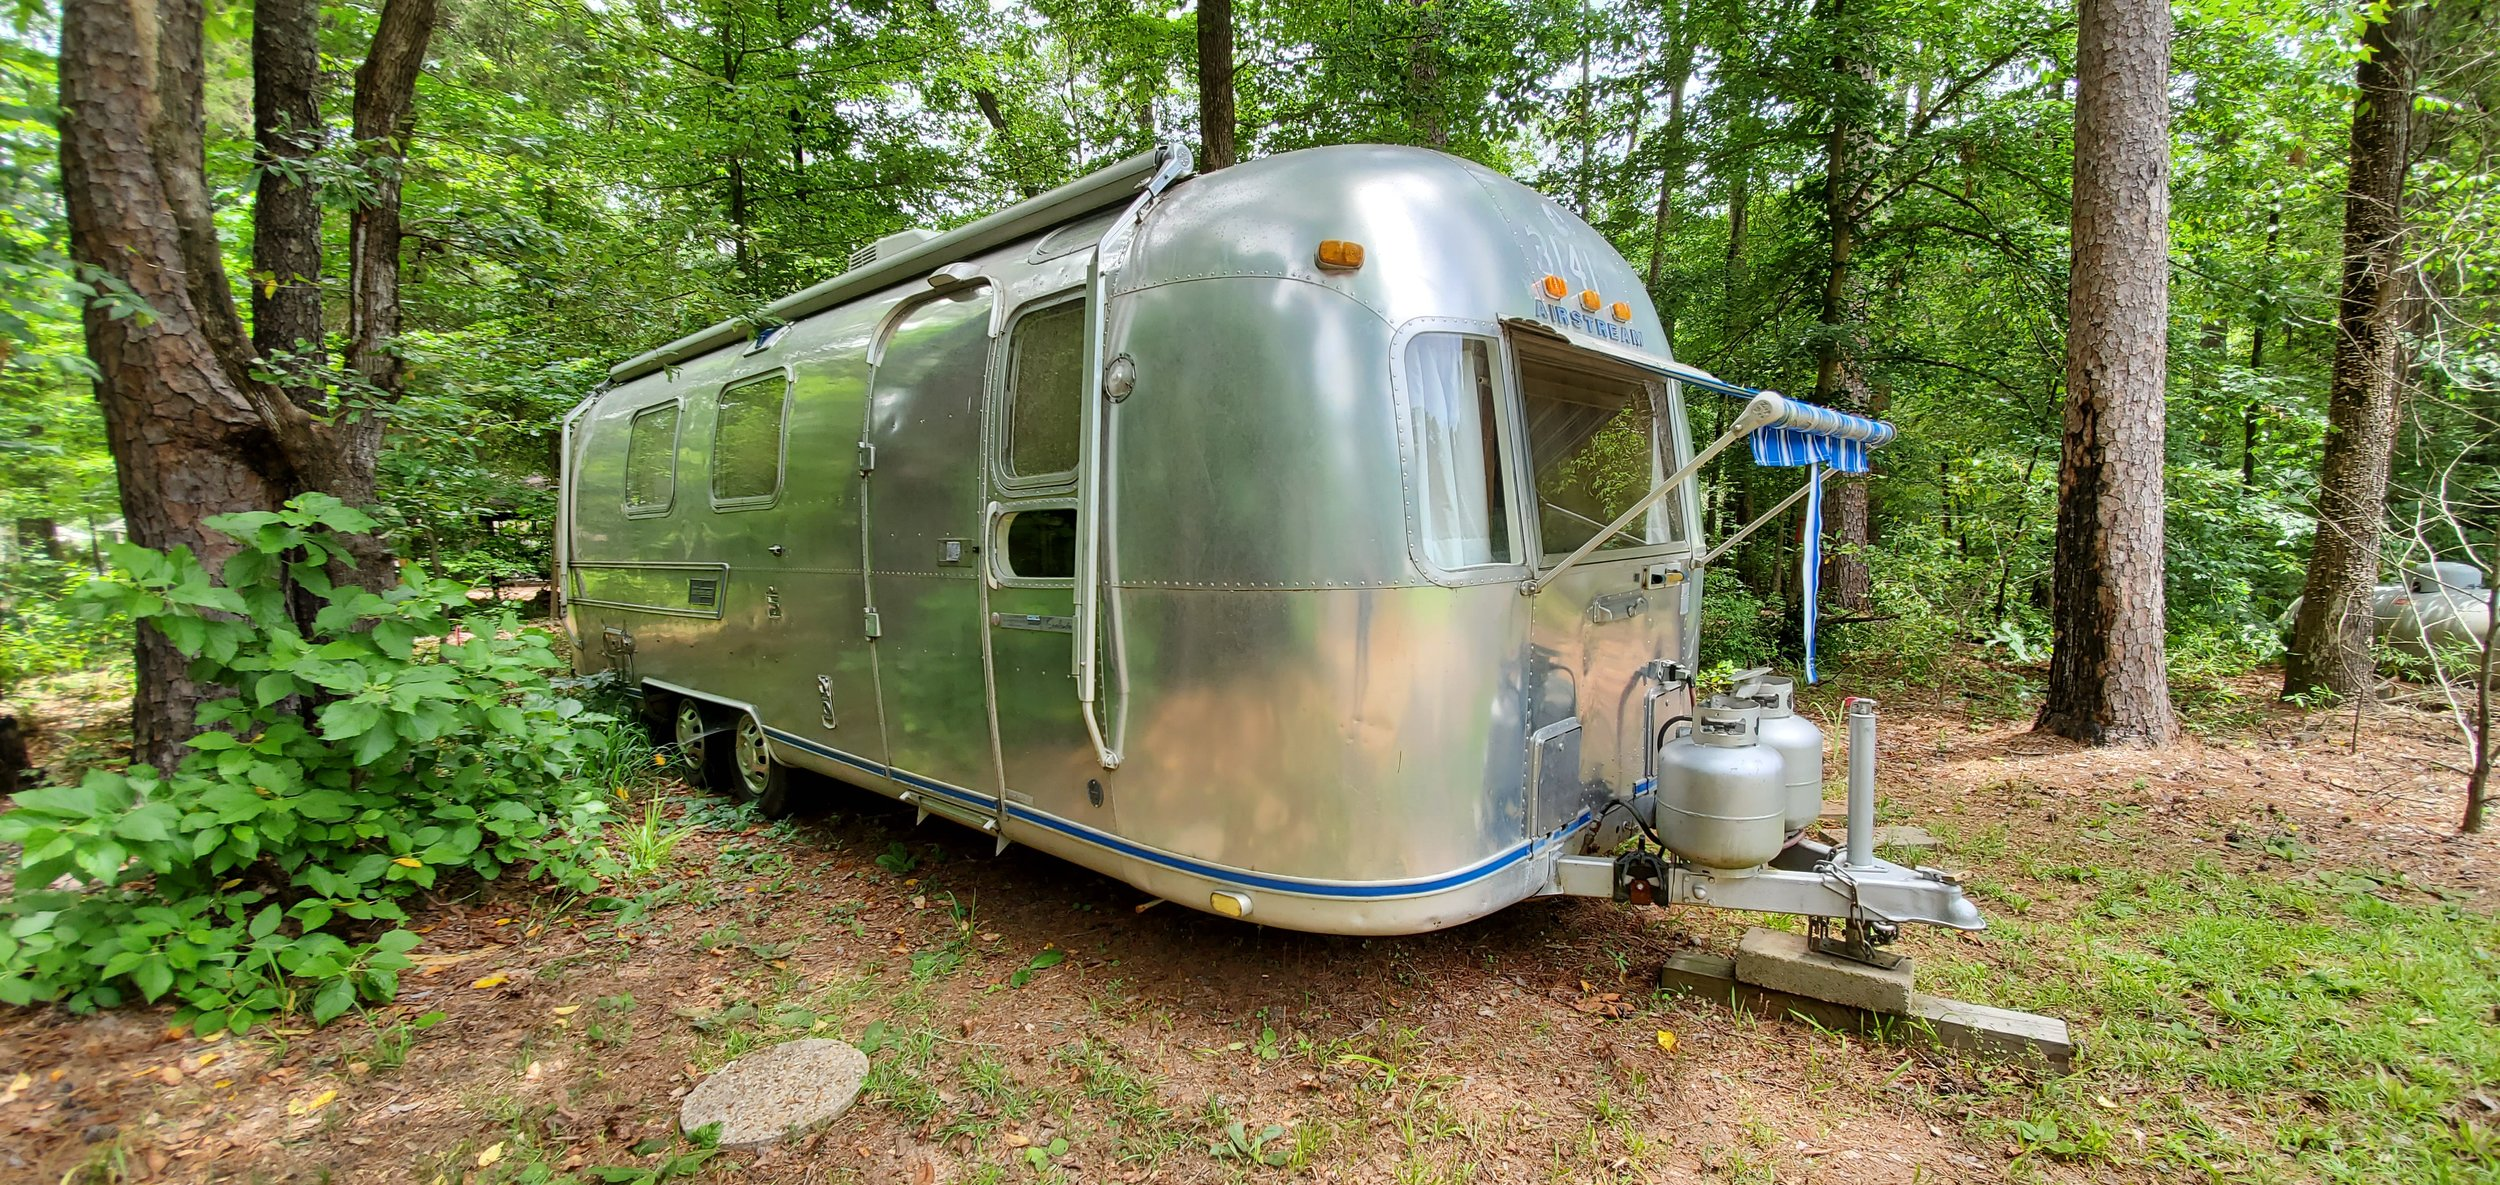 The Airstream our resident photographer will stay in for two weeks. Below is the location the Airstream will be placed; beside a small pond on Lynn Farms.